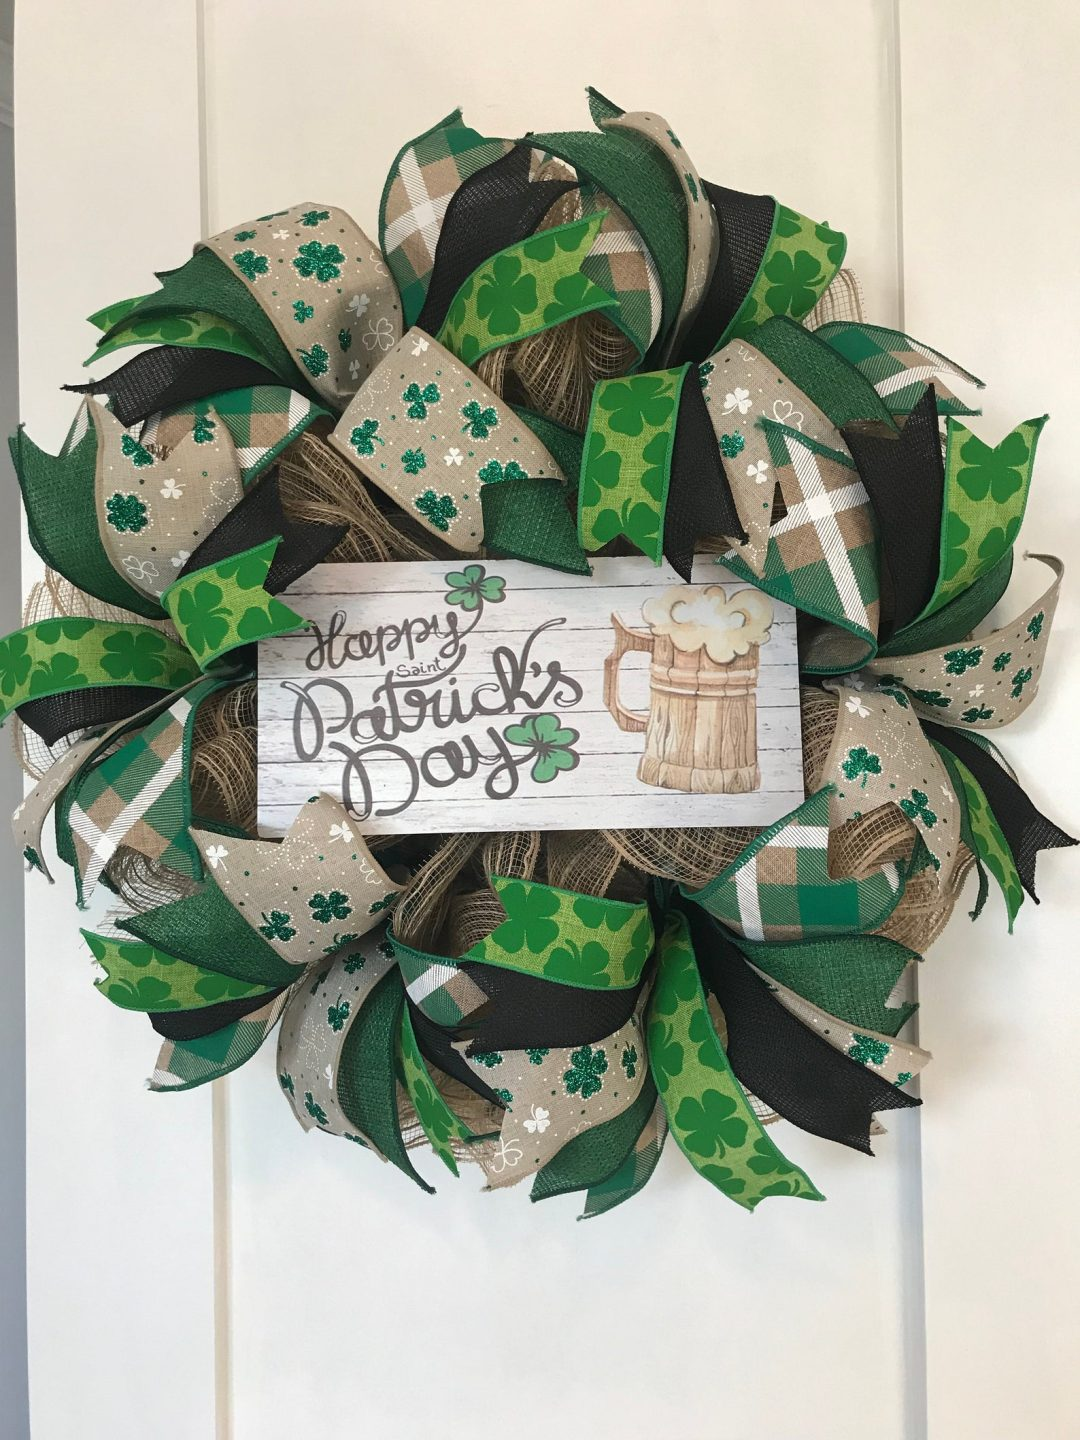 St. Patrick's Day wreaths with ribbons